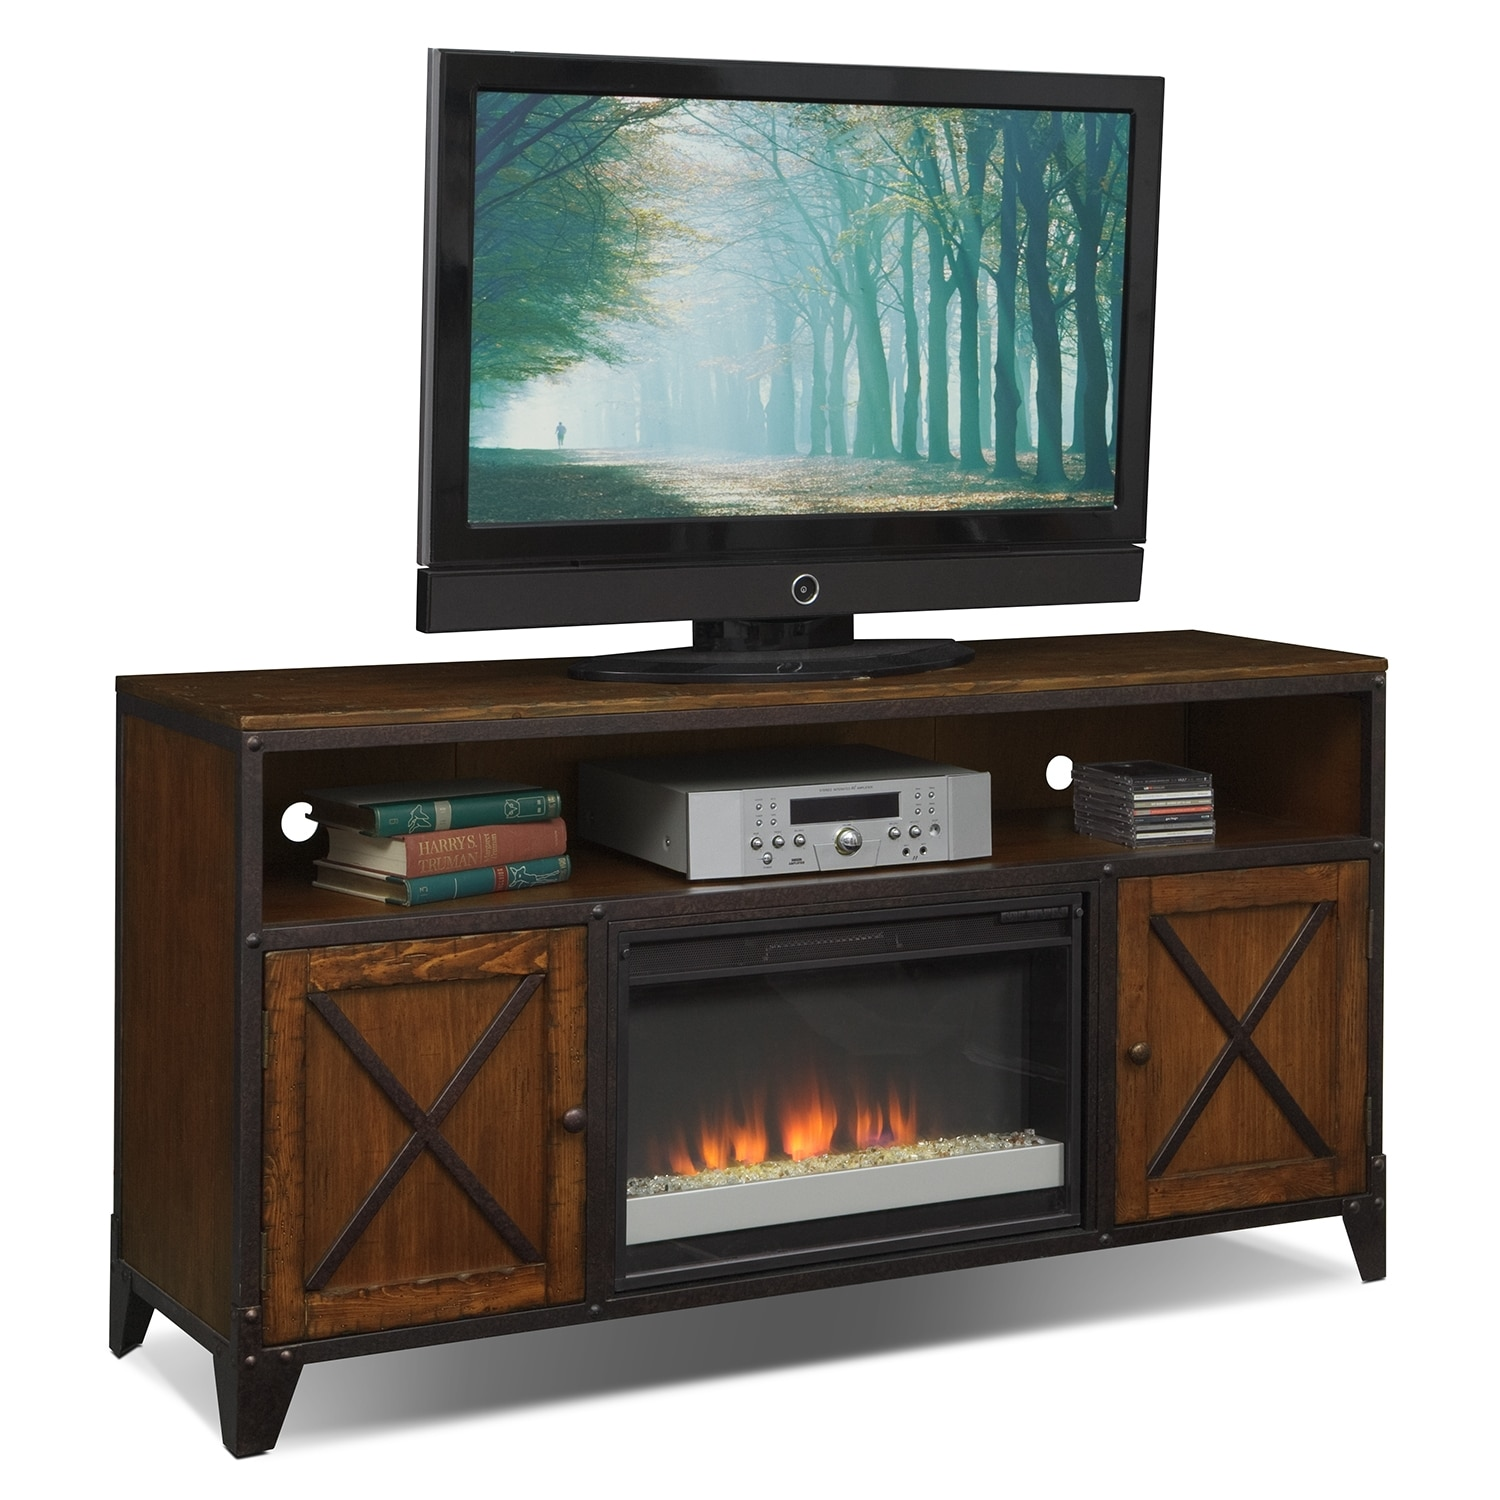 Pin Fireplace And Entertainment Wall Unit By Moody Cabinets On Wall Unit Entertainment Center